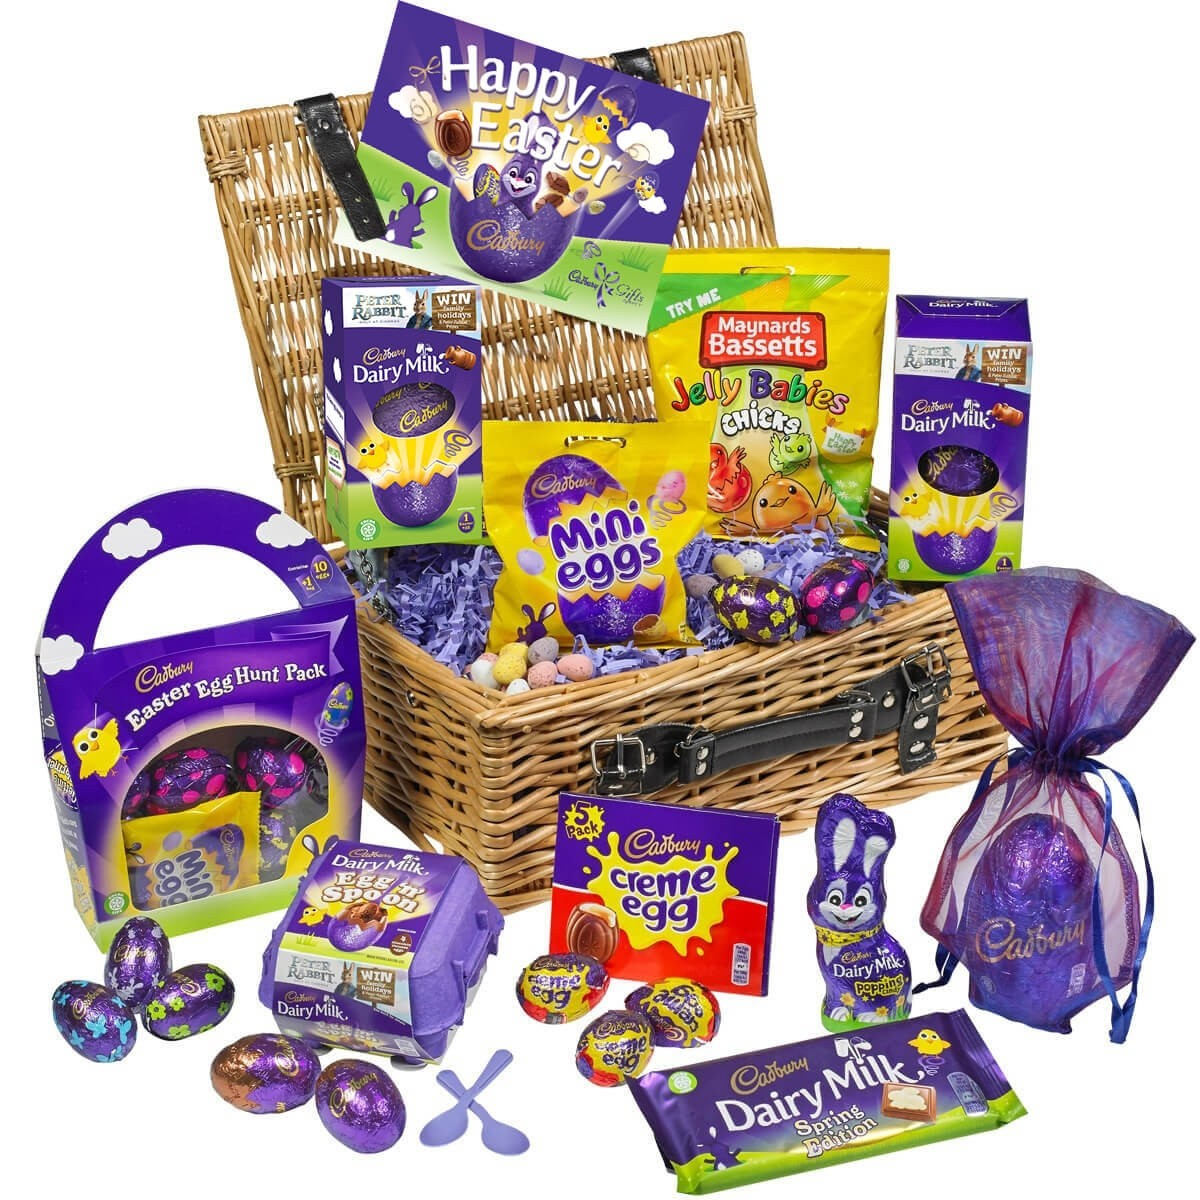 The first 10 people to order will receive a Cadbury Easter Hamper worth £30